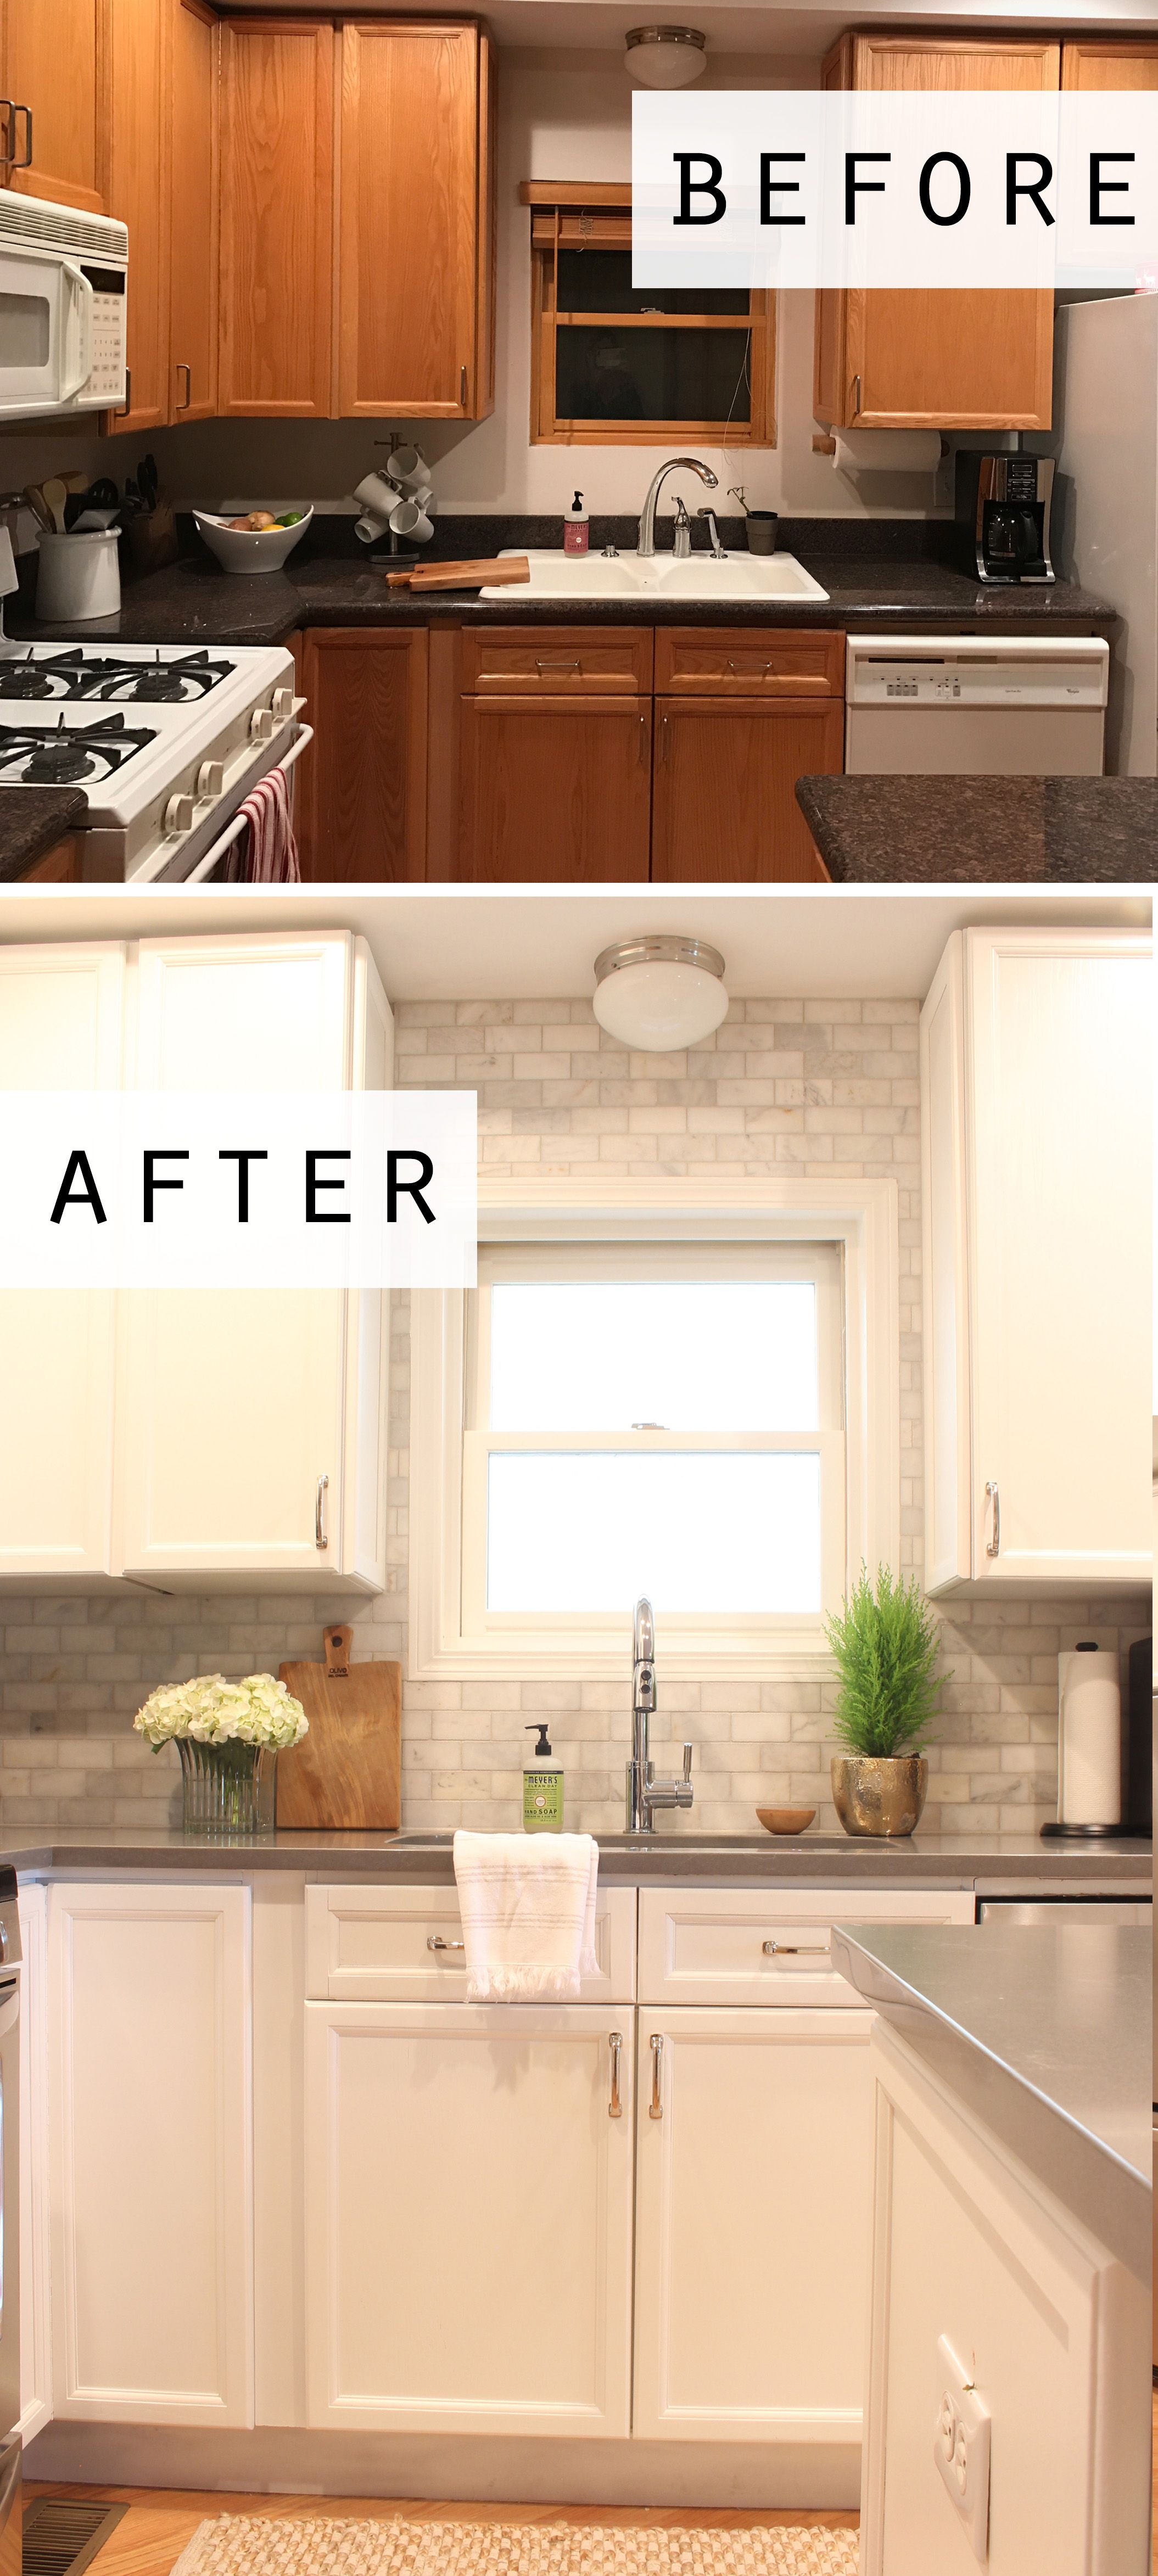 Cottage style before and after kitchen makeover featuring white cabinets quartz countertops and a